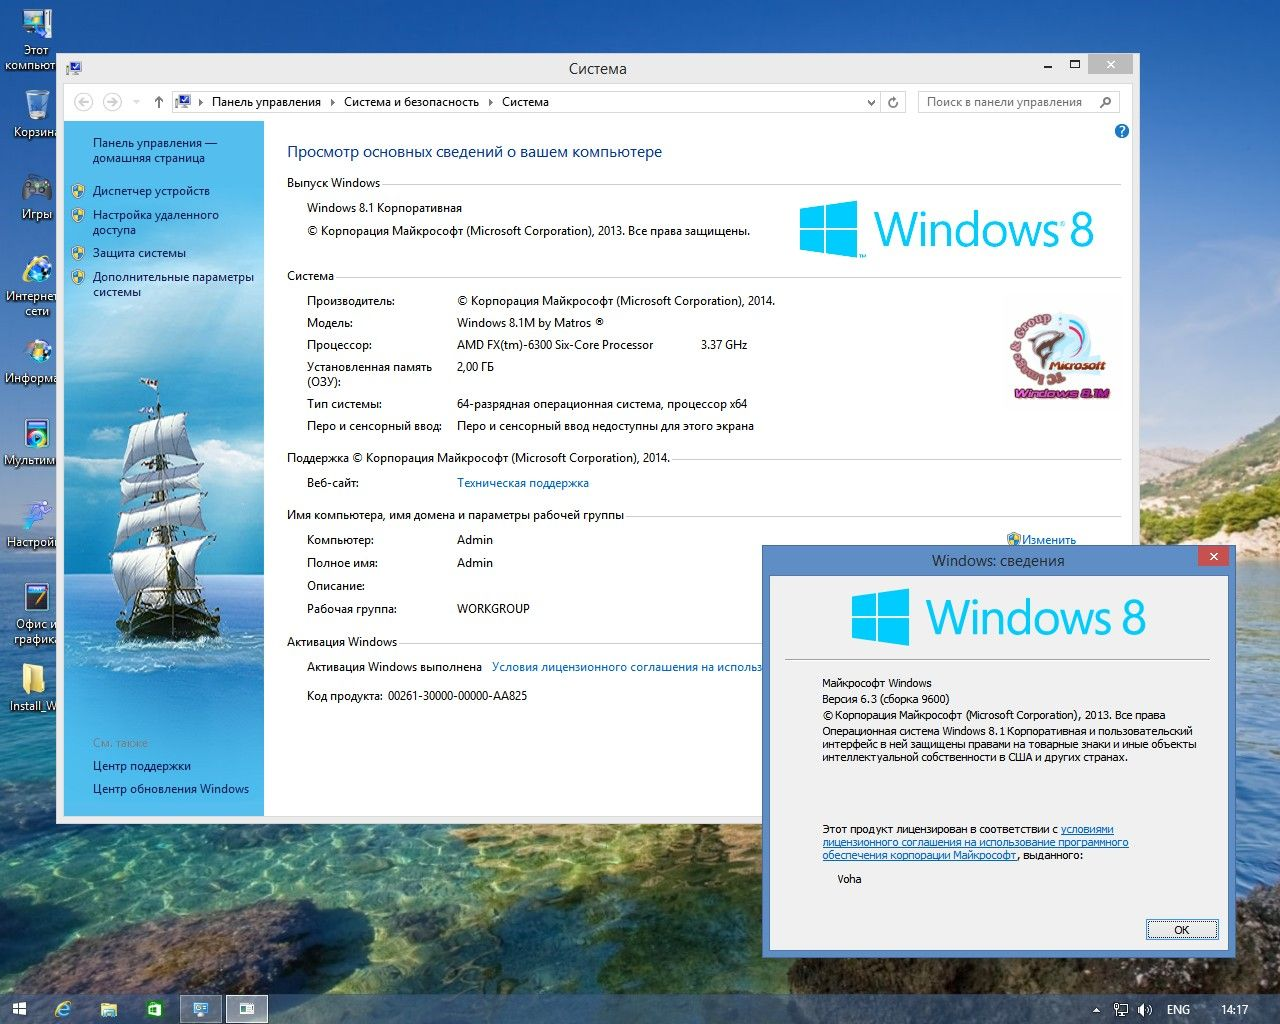 Windows 8.1 Enterprise x86/x64 With Update Matros Edition v.05 (19.10.2014) RUS